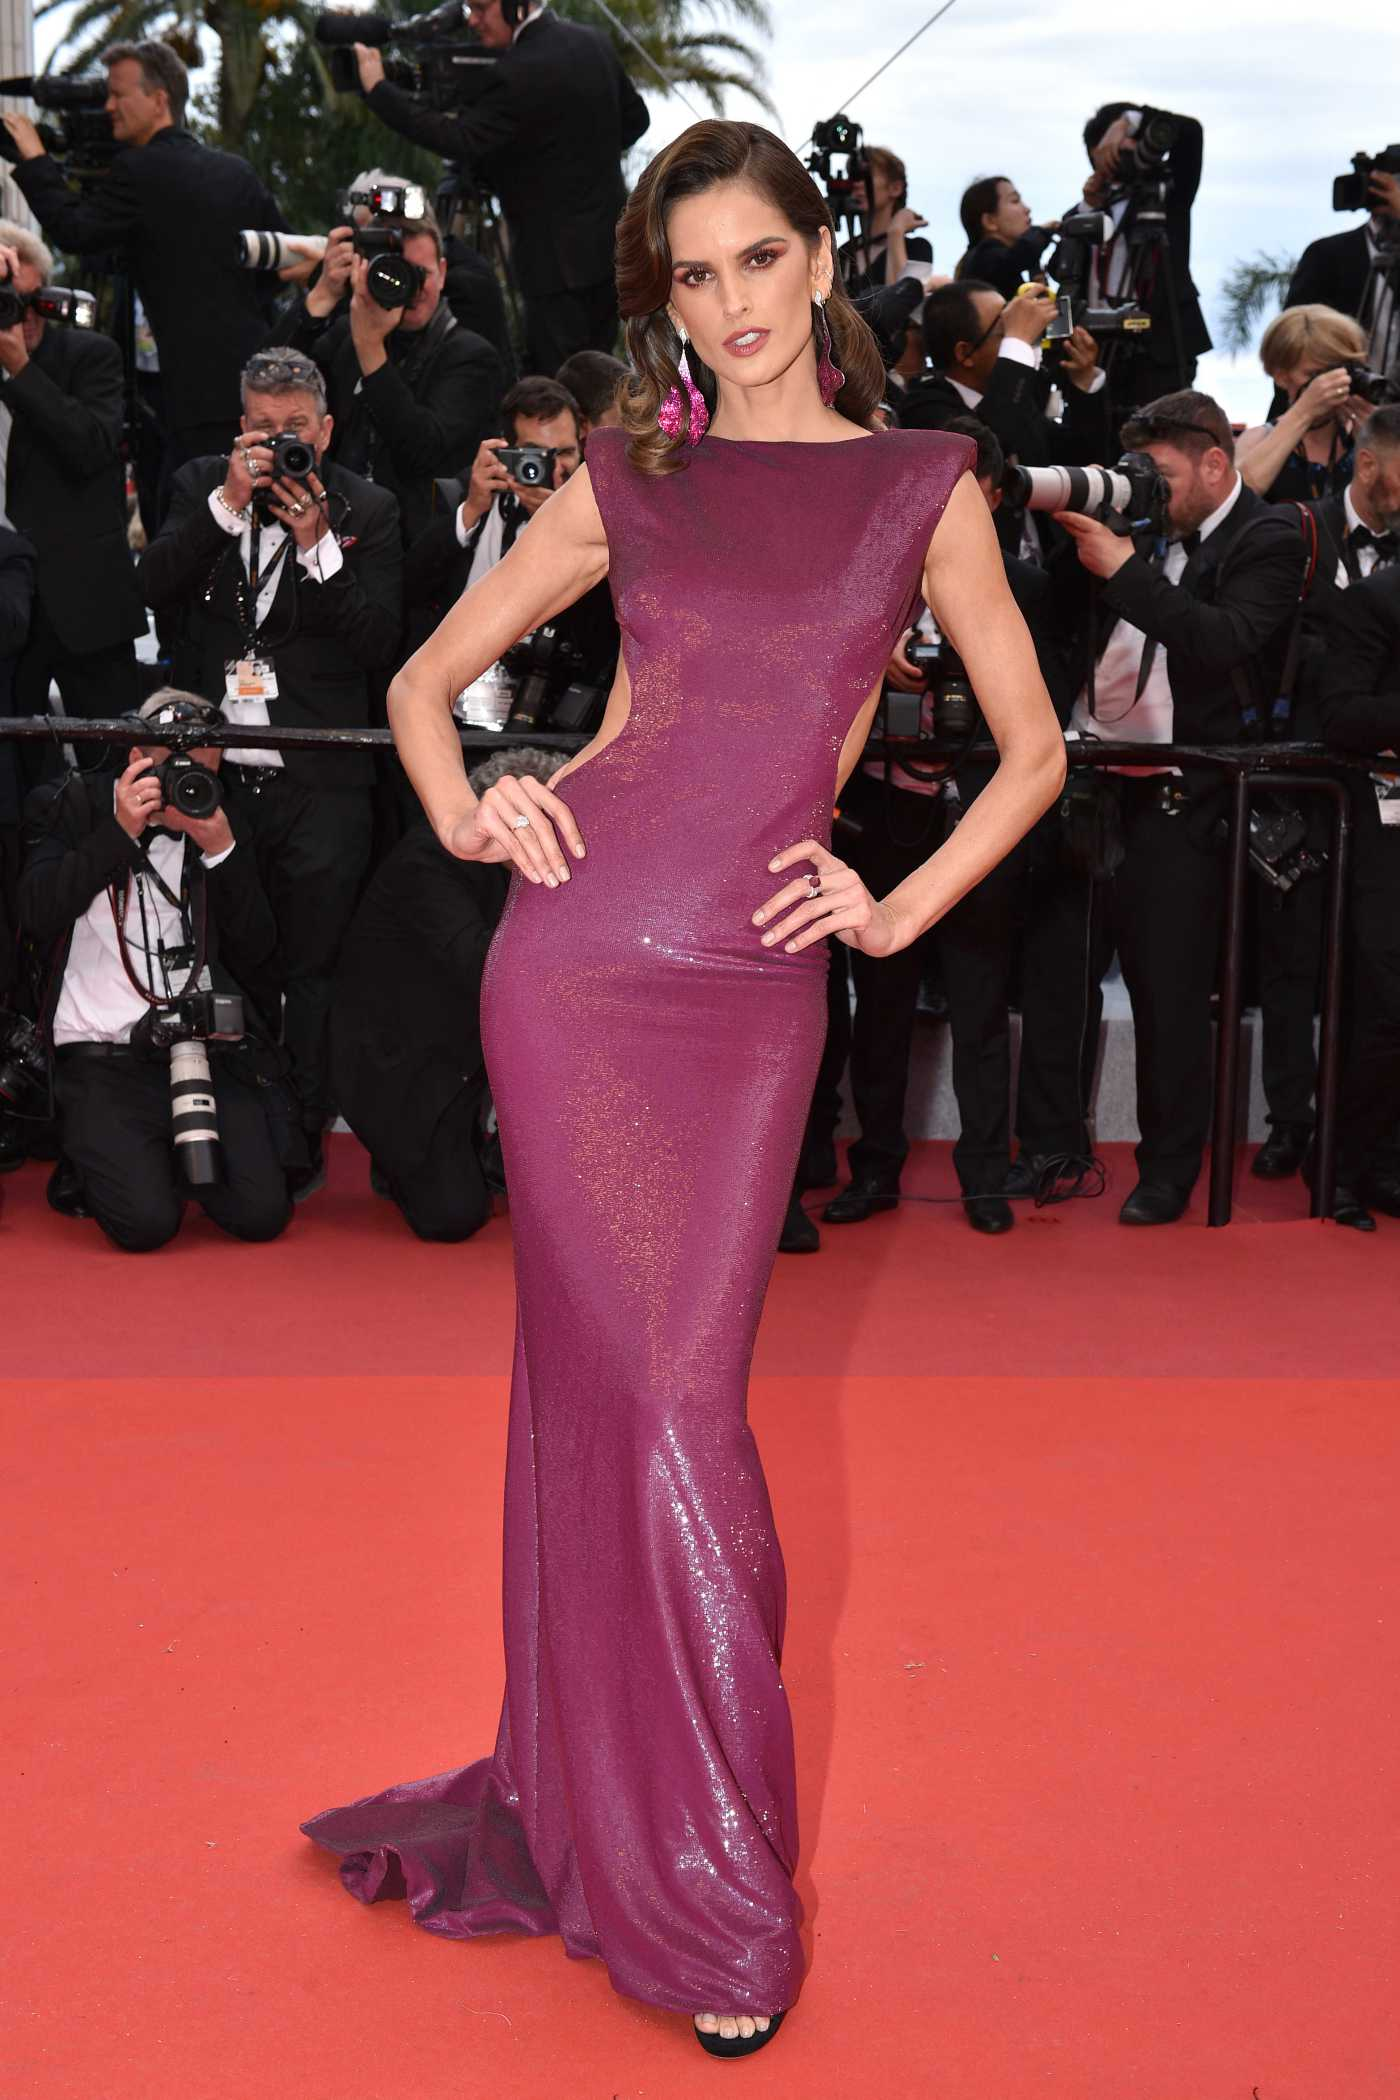 Izabel Goulart Attends The Dead Don't Die Red Carpet During the 72nd Cannes International Film Festival in Cannes 05/14/2019